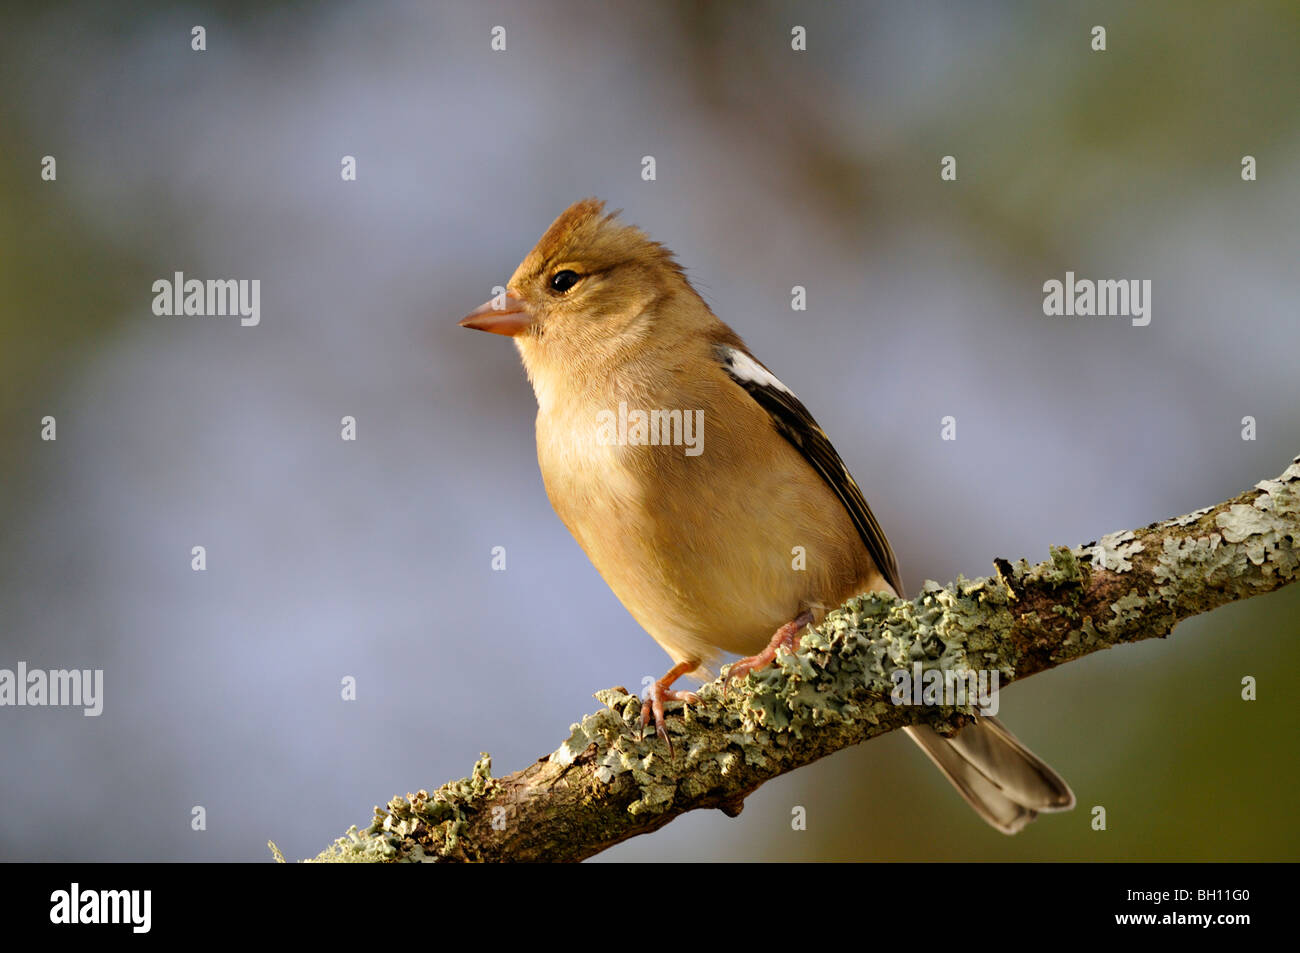 Male chaffinch with raised crest perching on a branch Stock Photo